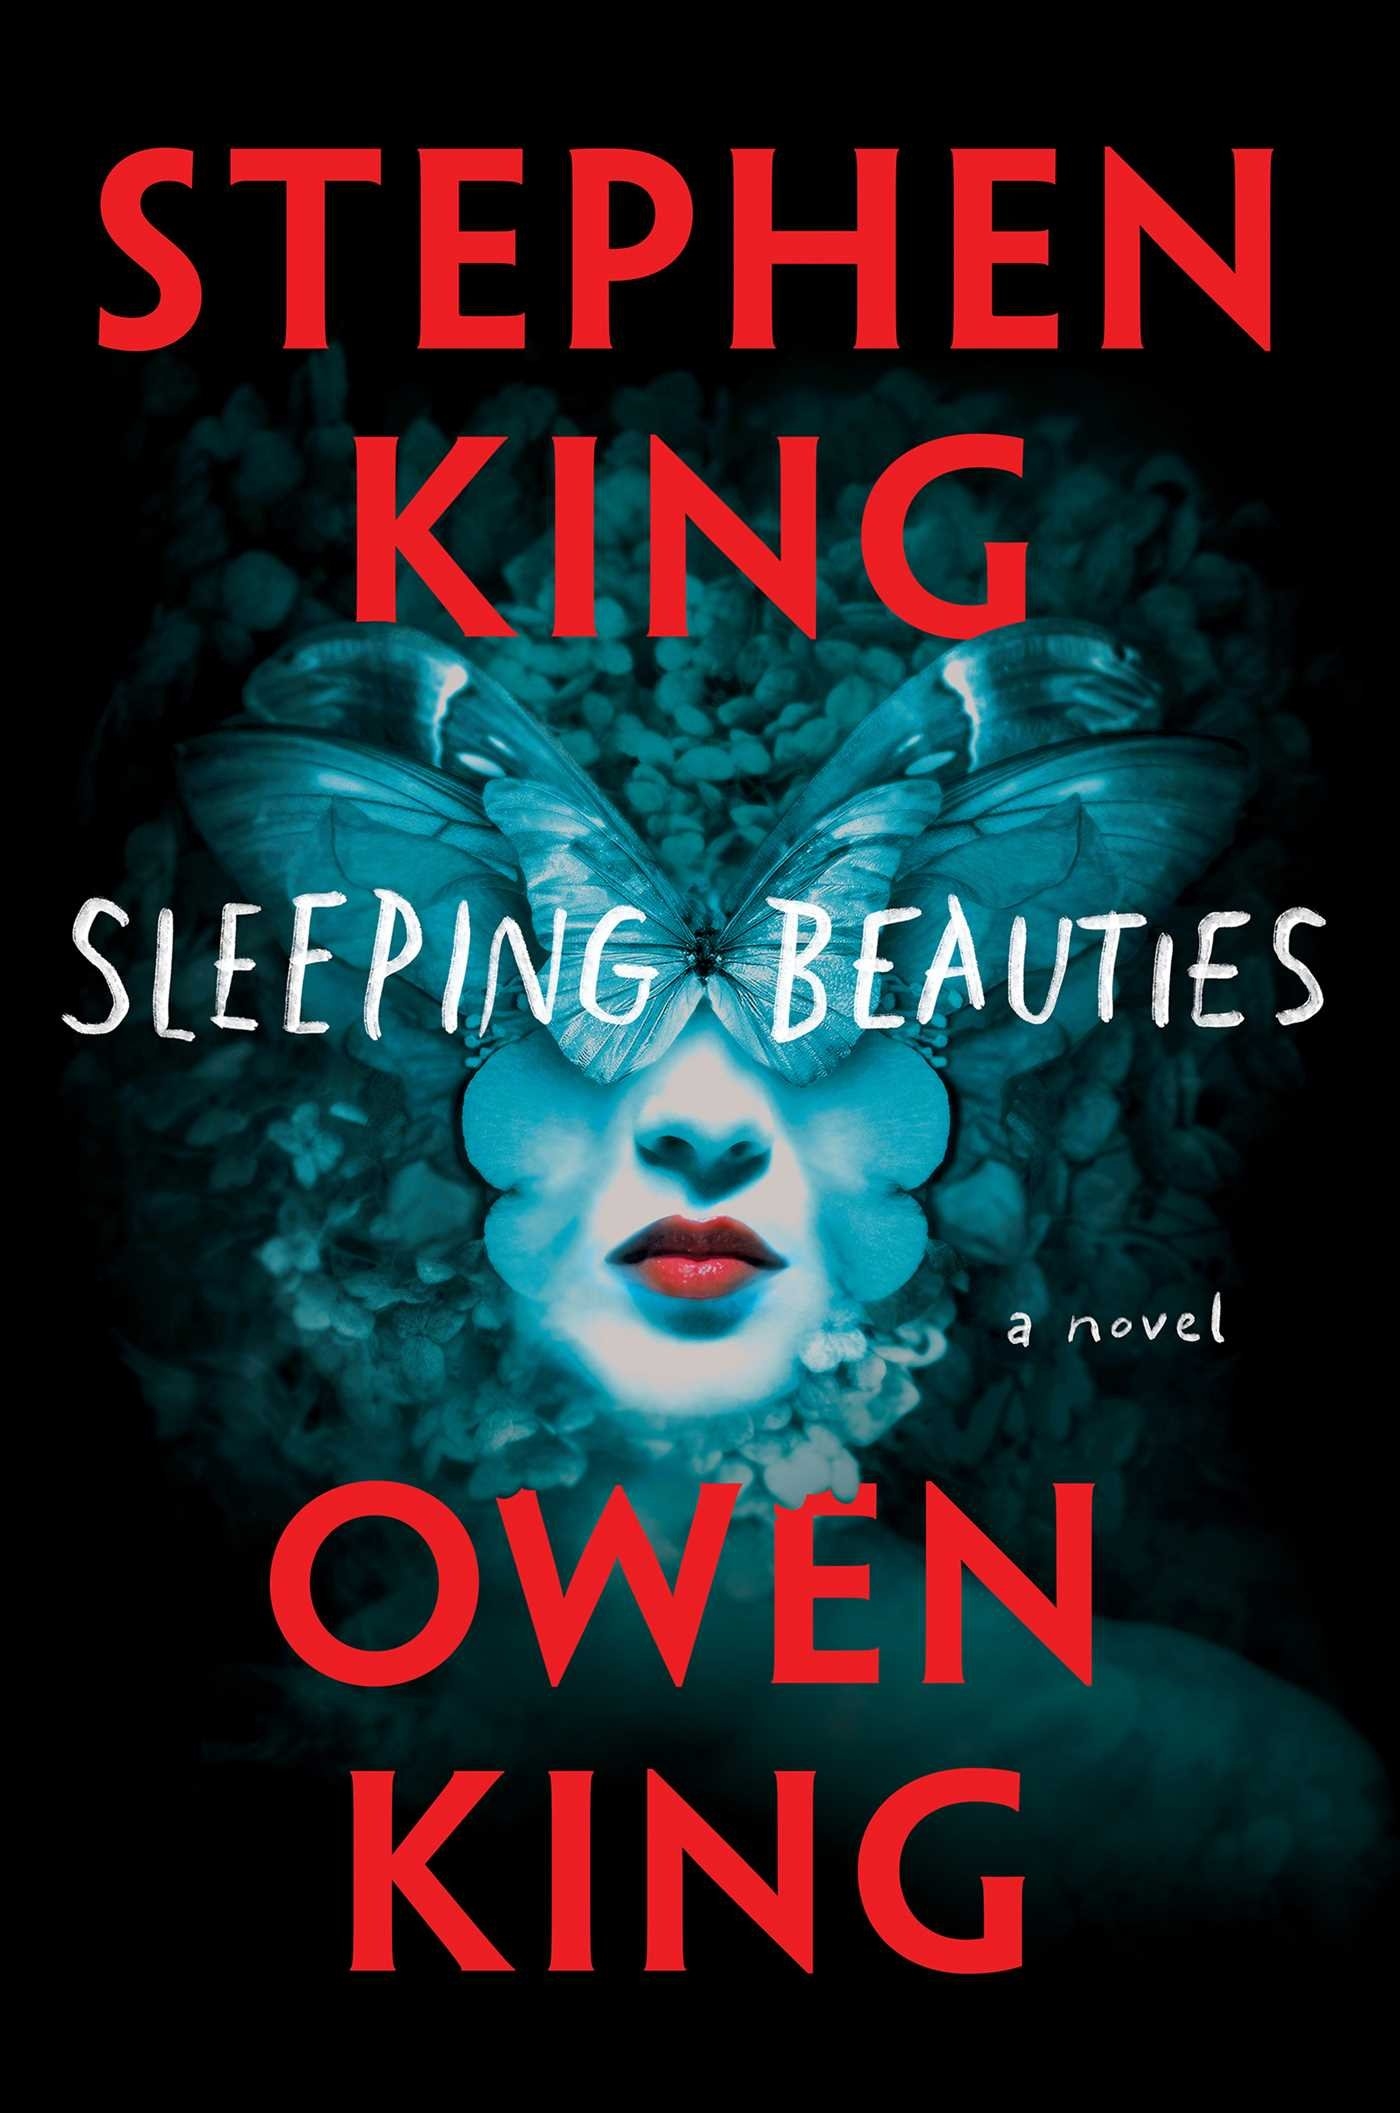 [SLEEPING BEAUTIES - couverture du livre de Stephen King et Owen King]